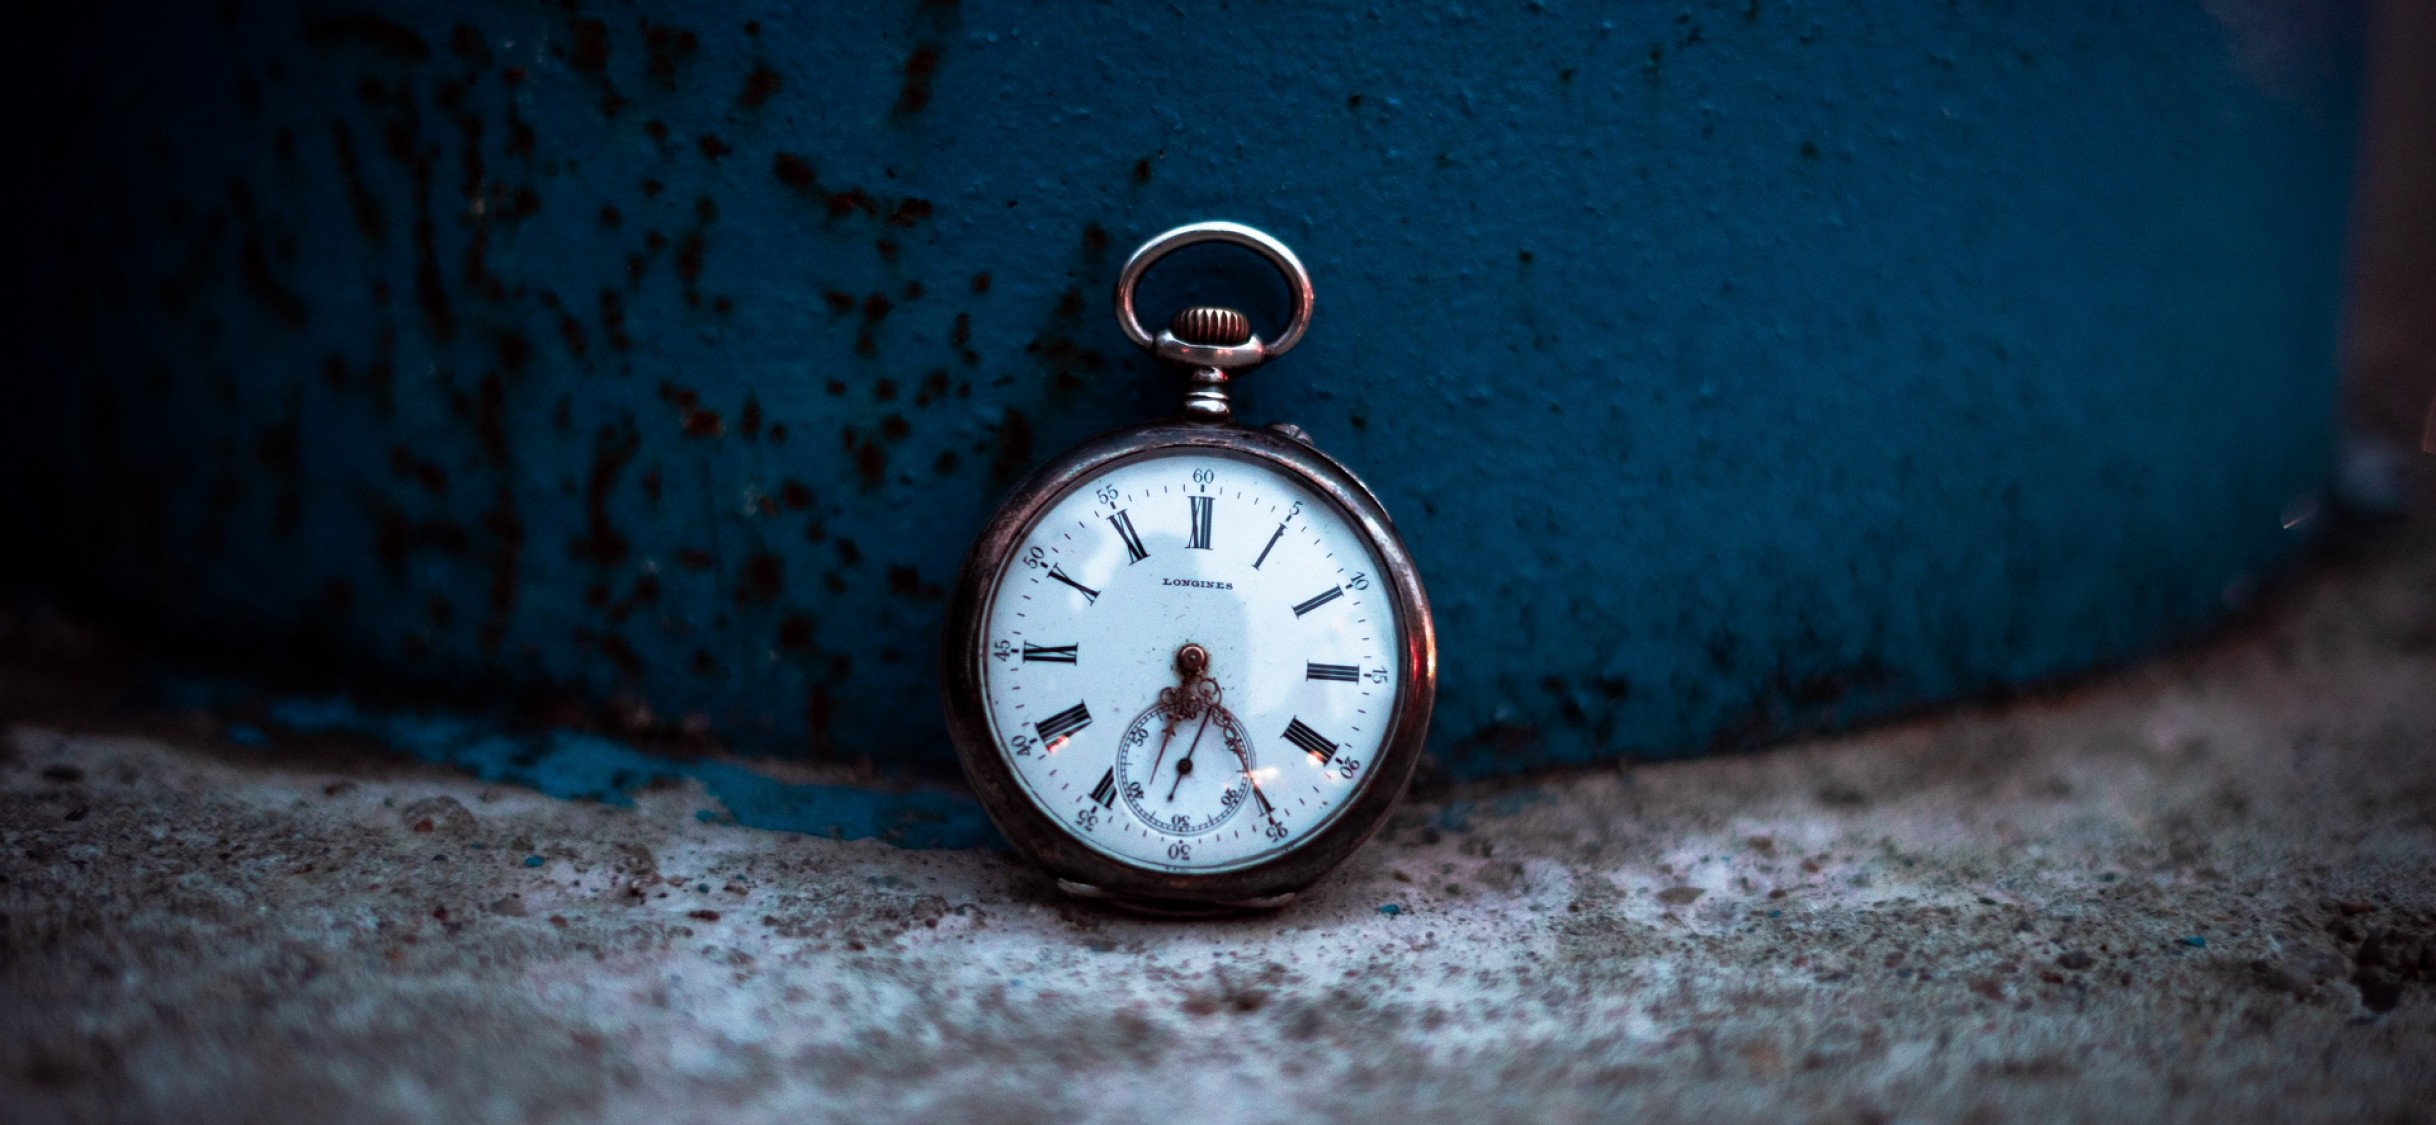 Pocket Watch Hd Wallpaper Iphone X Hd Wallpaper